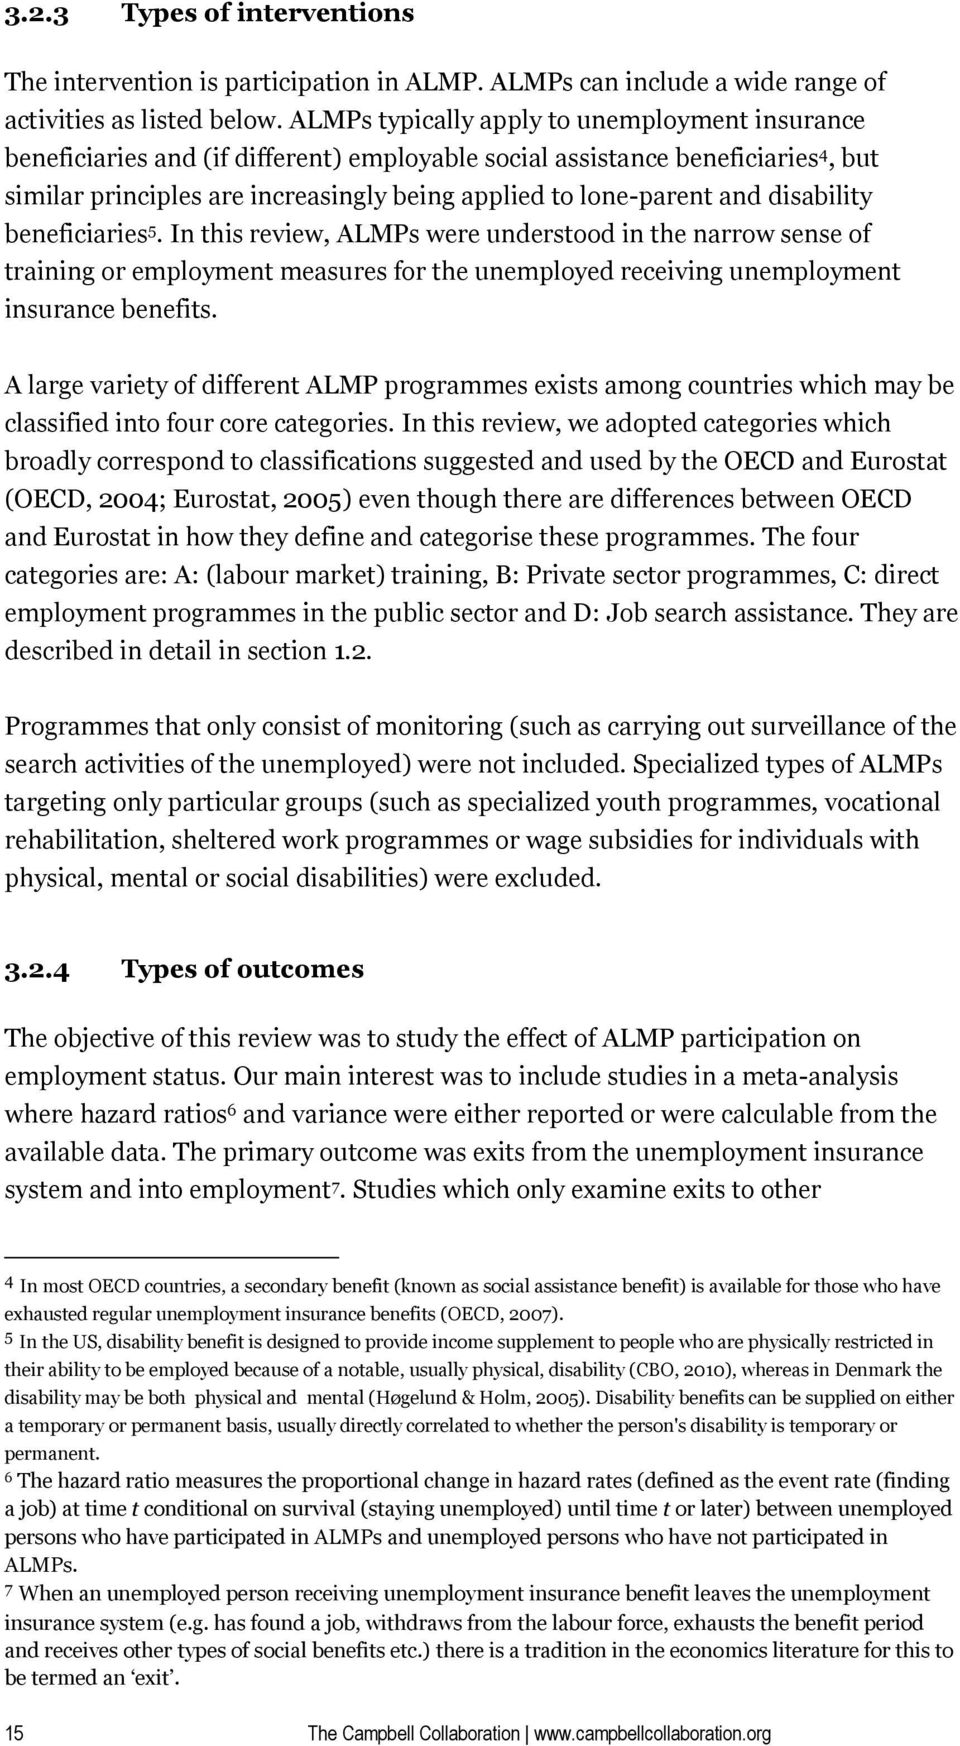 disability beneficiaries 5. In this review, ALMPs were understood in the narrow sense of training or employment measures for the unemployed receiving unemployment insurance benefits.